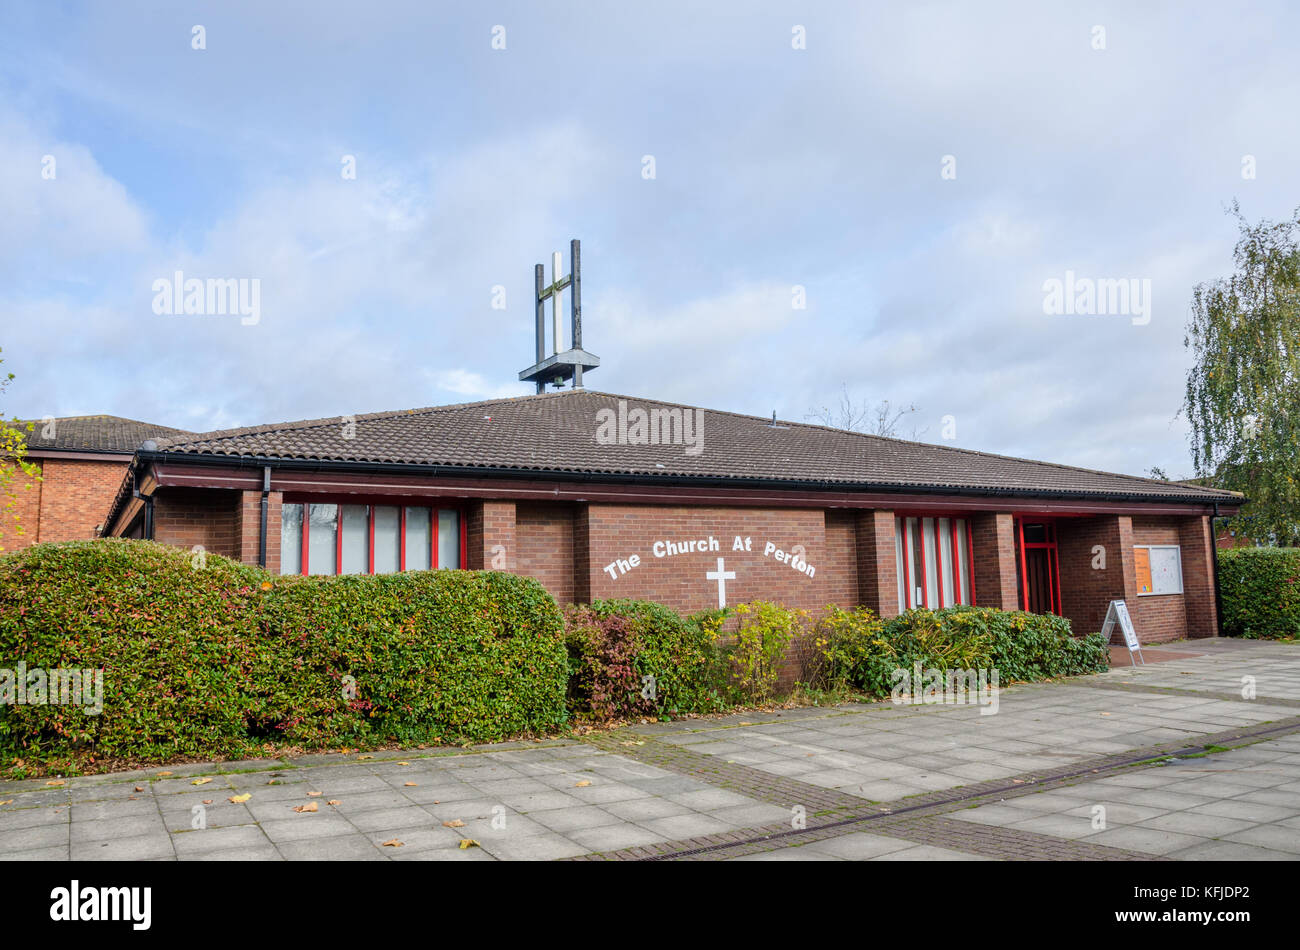 The church in the centre of the village of Perton in South Staffodshire near Wolverhampton in the UK. - Stock Image